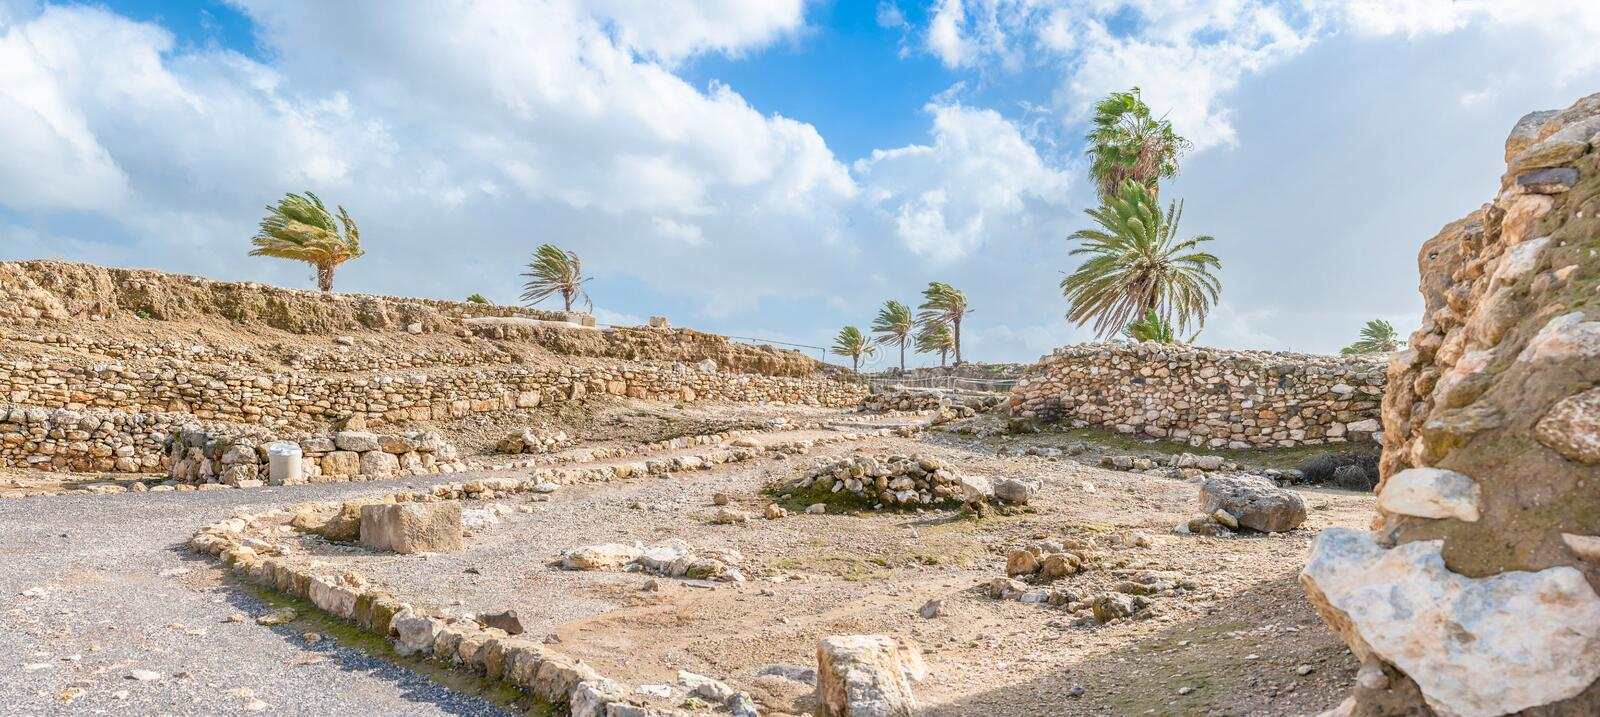 Tel Megiddo ruins. Tel Megiddo in norhtern Israel is better known under it's Greek name - Armageddon. The Book of Revelation mentions an apocalyptic battle at royalty free stock photos